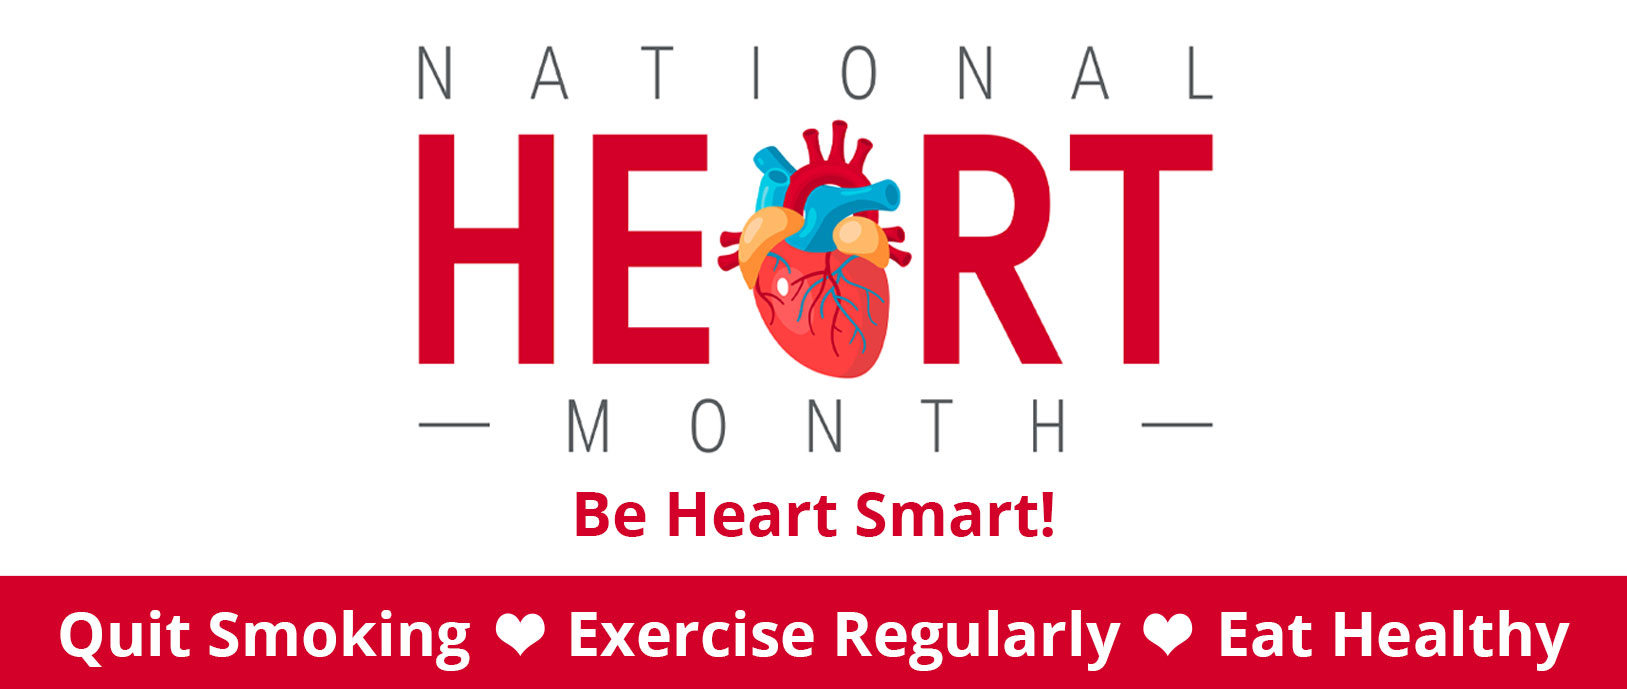 National Heart Month Be Heart Smart!  Quit Smoking - Exercise Regularly - Eat Healthy